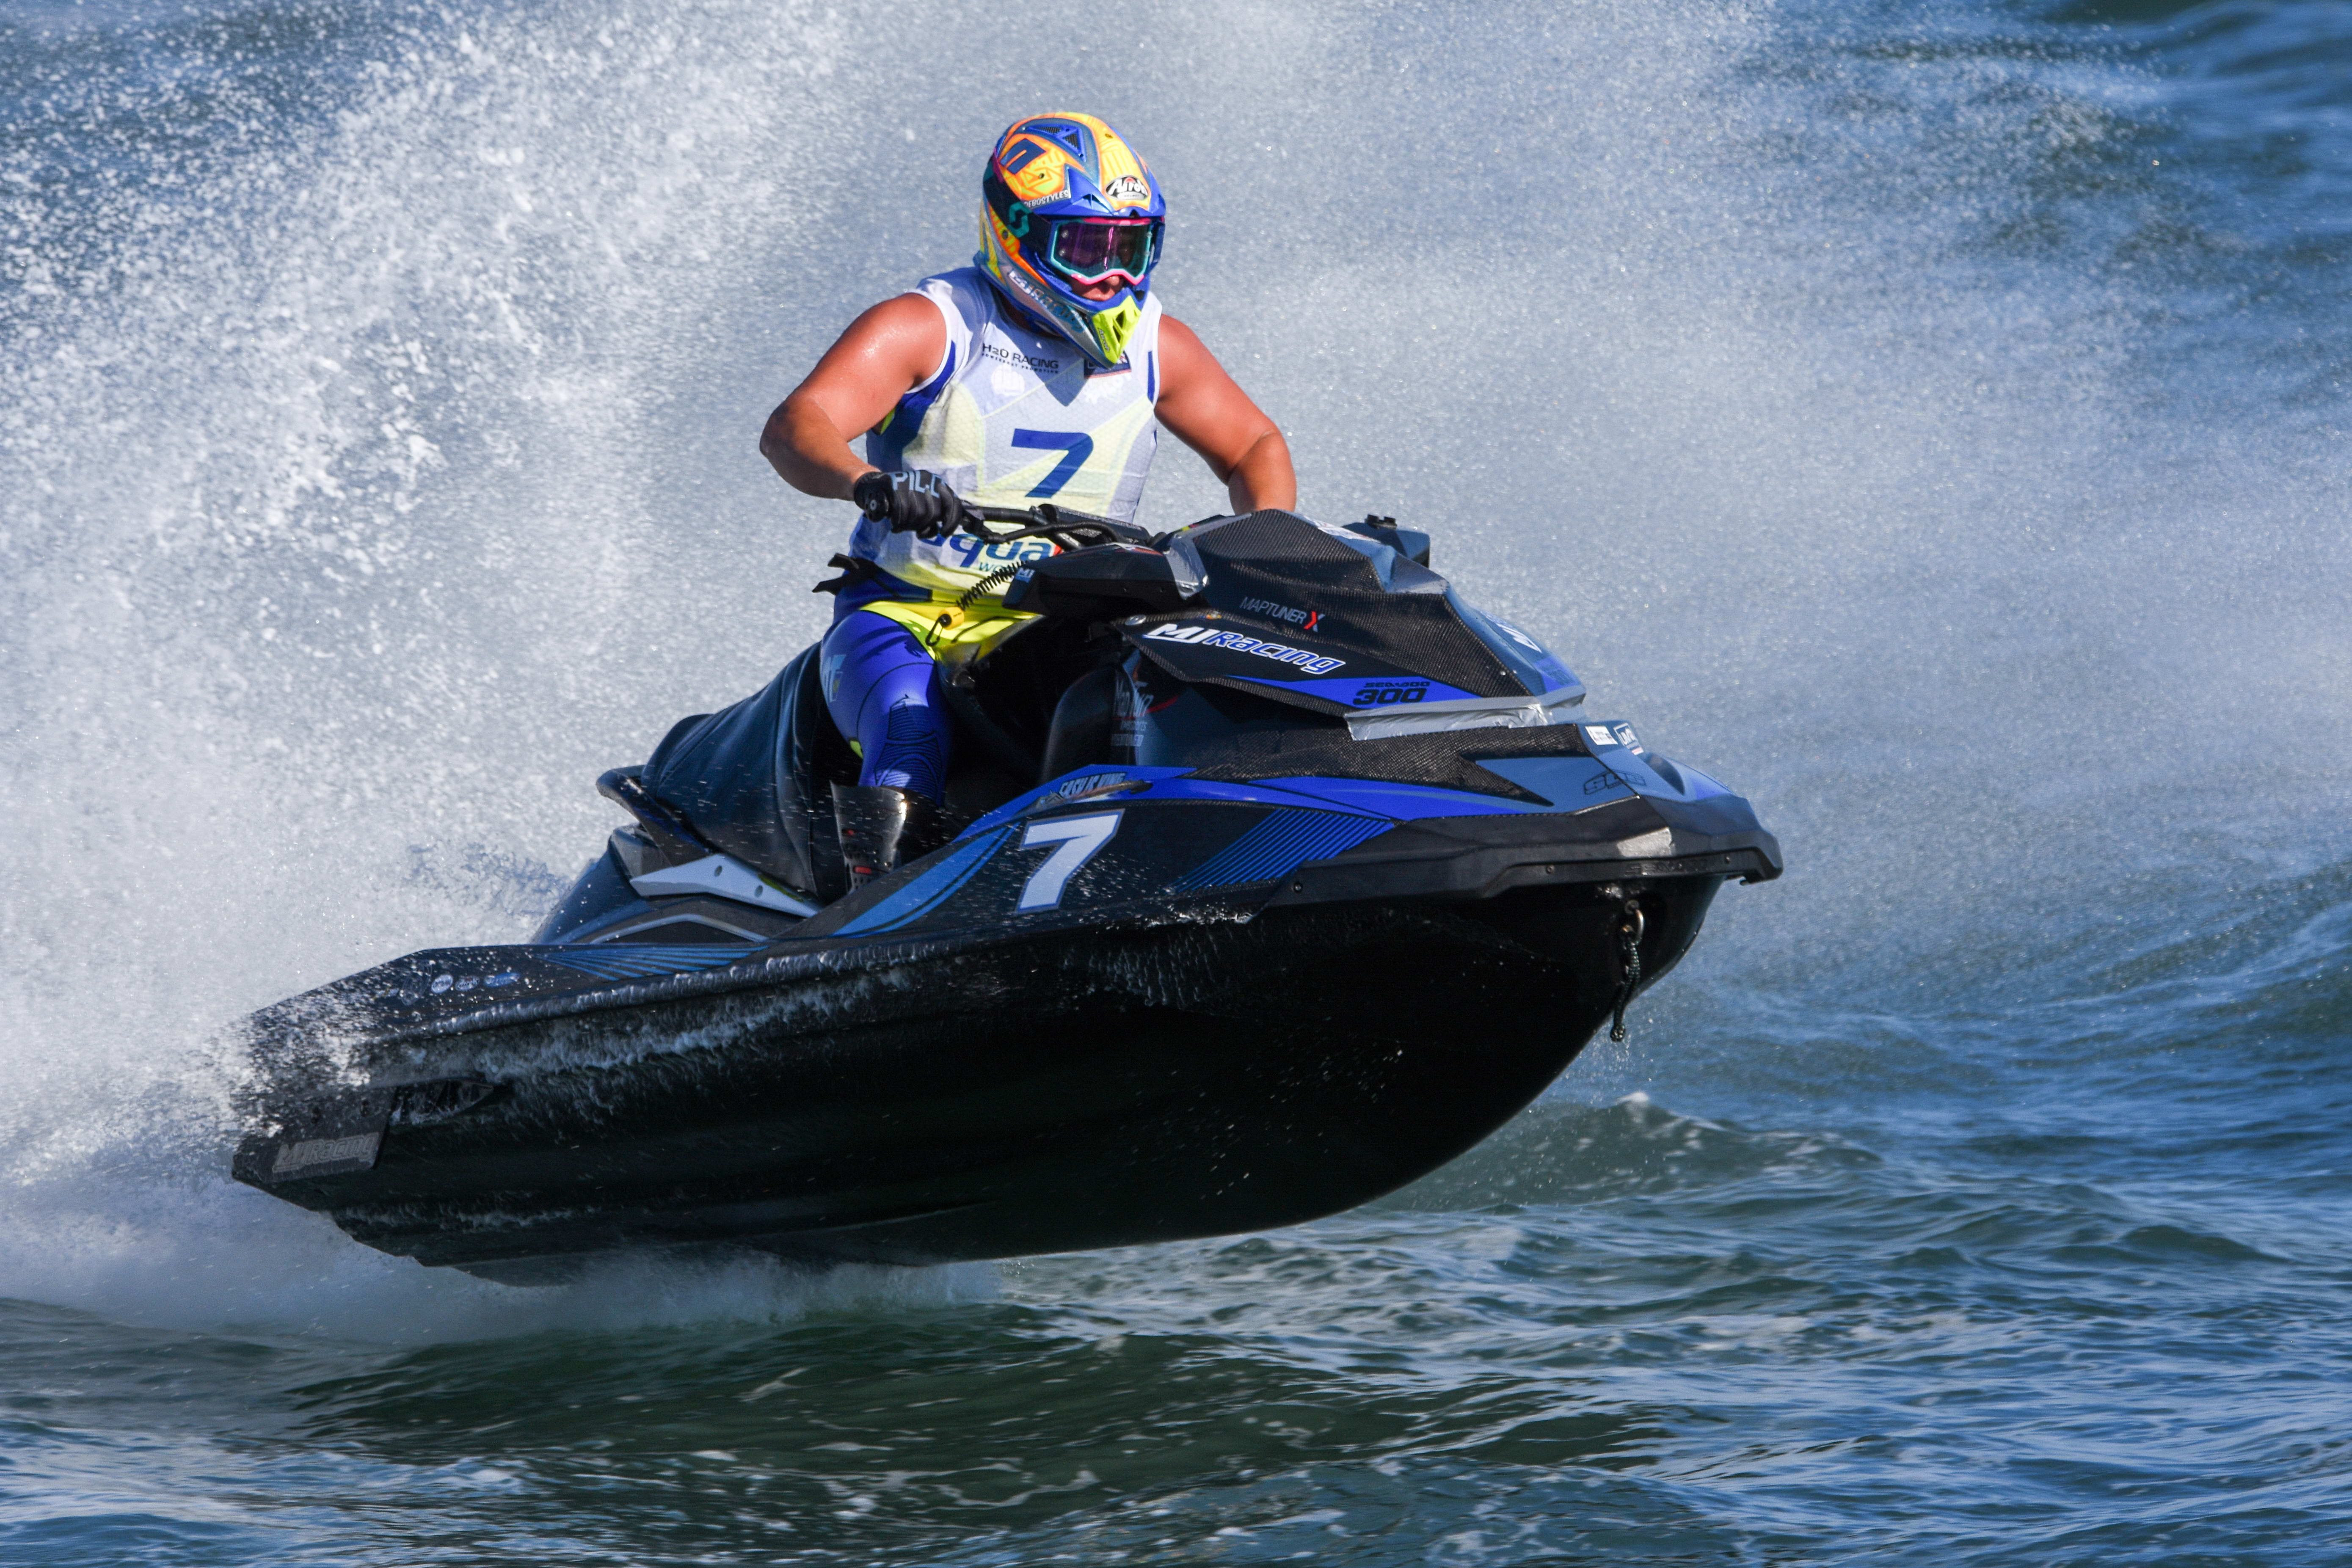 AQUABIKE TITLE RACE SET TO STEP UP A GEAR AT THE UIM-ABP HAIER GRAND PRIX IN QINGDAO